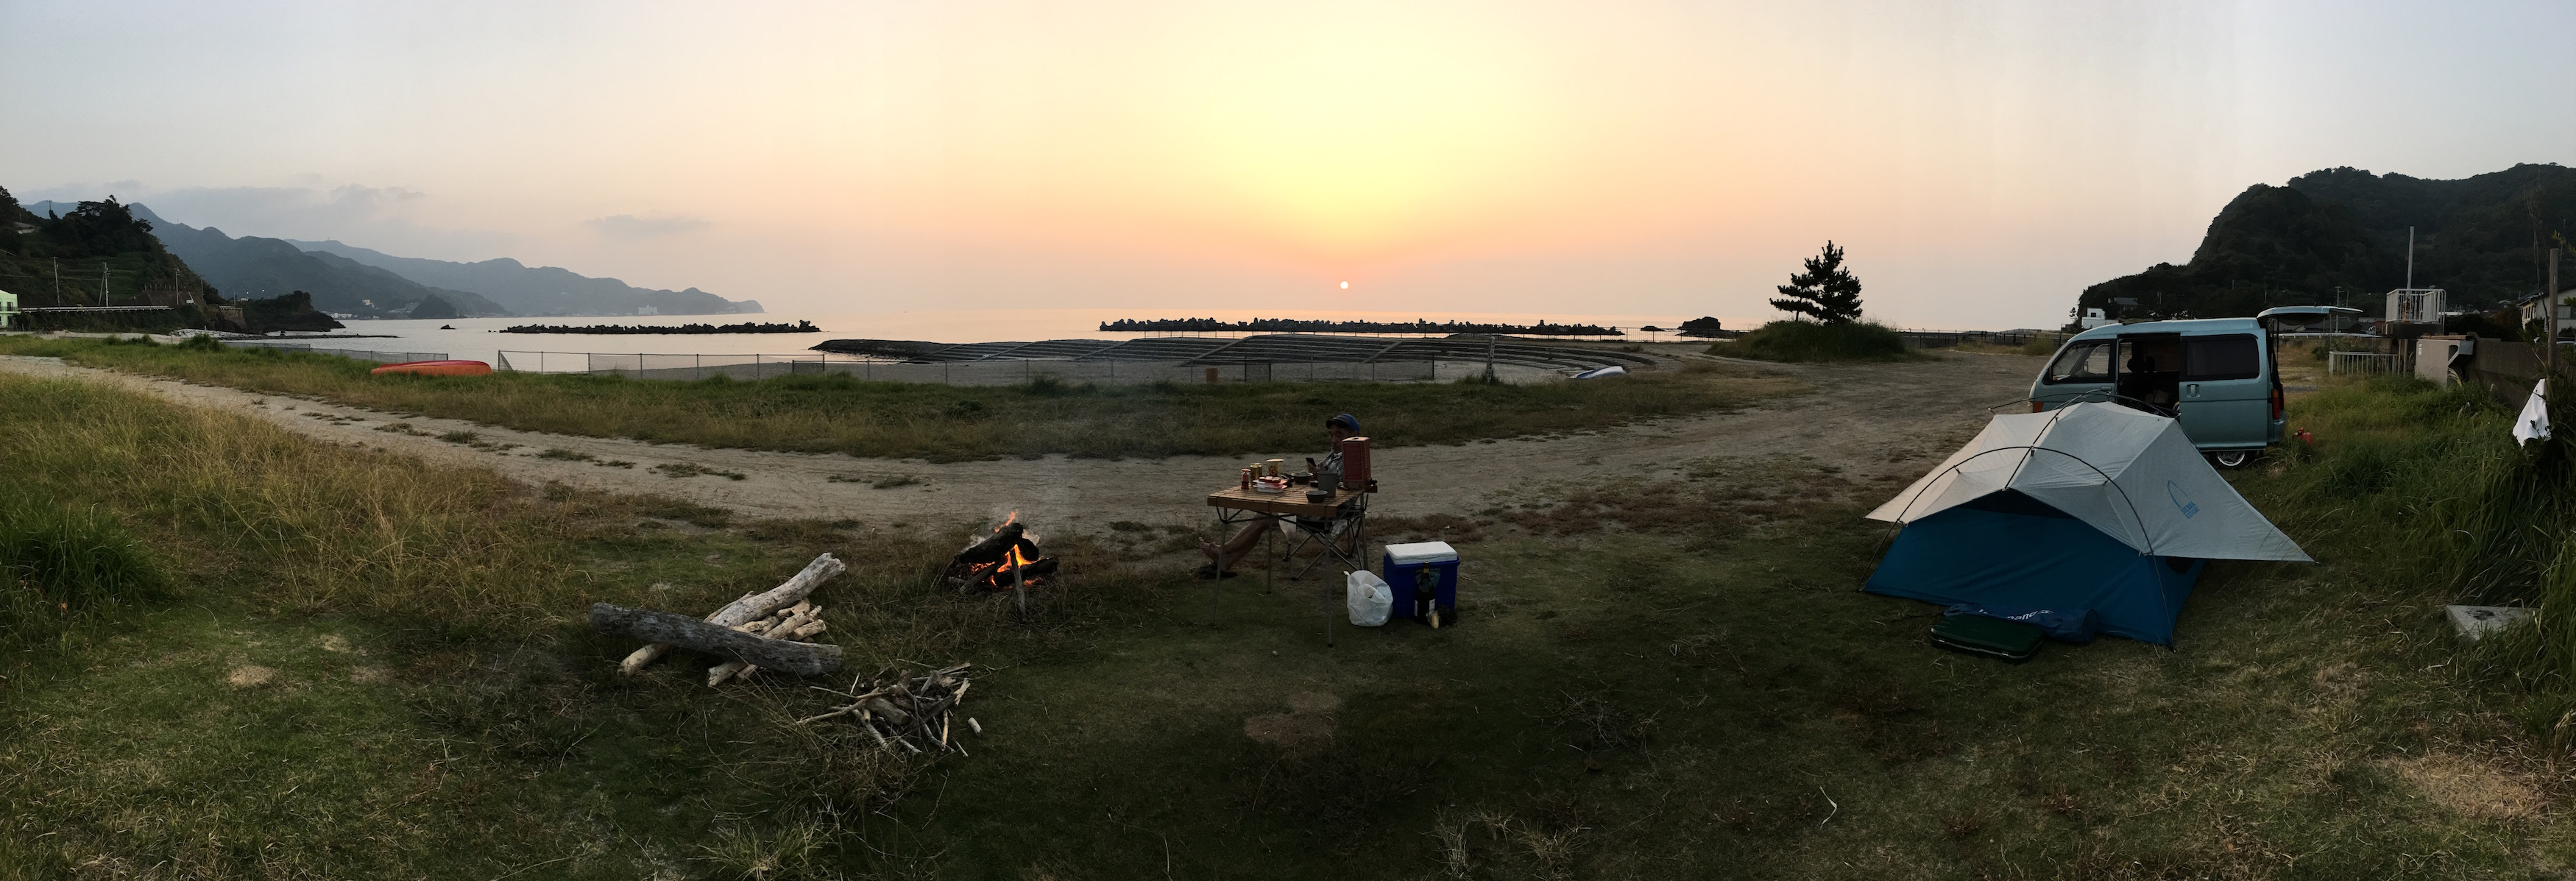 The sunset view from our camp